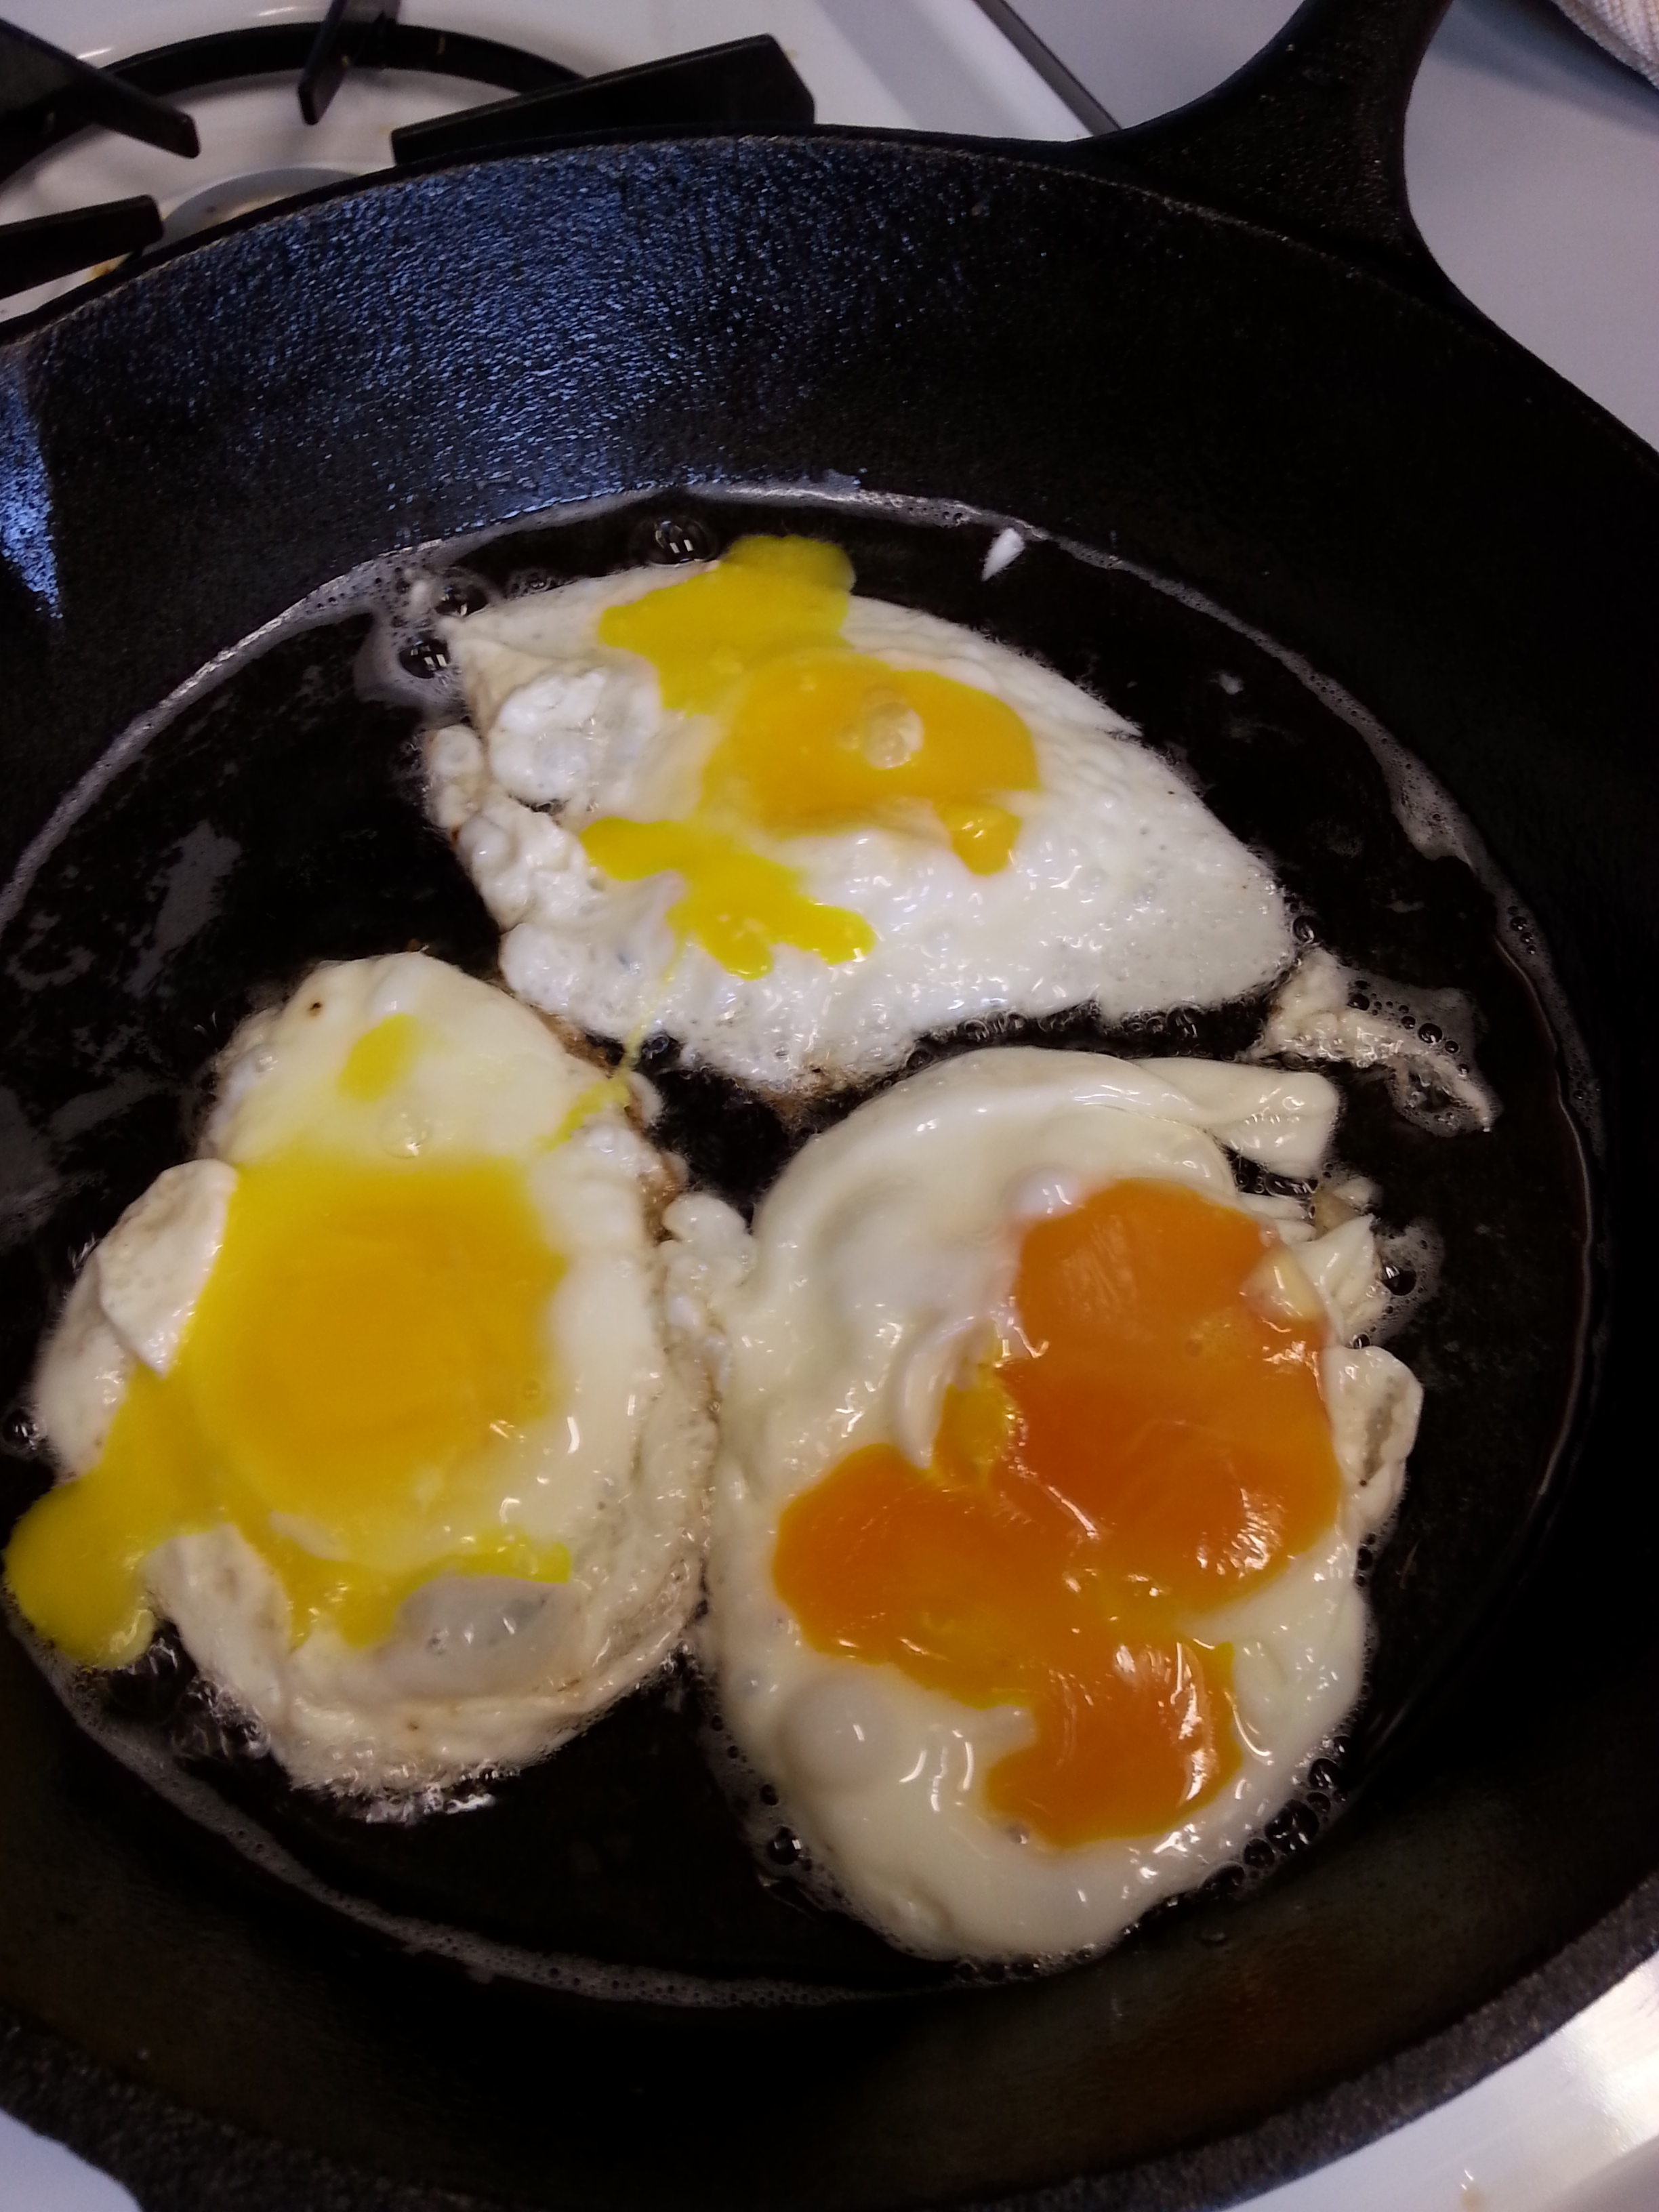 The bright color of our eggs especially stood out once the yolks were broken